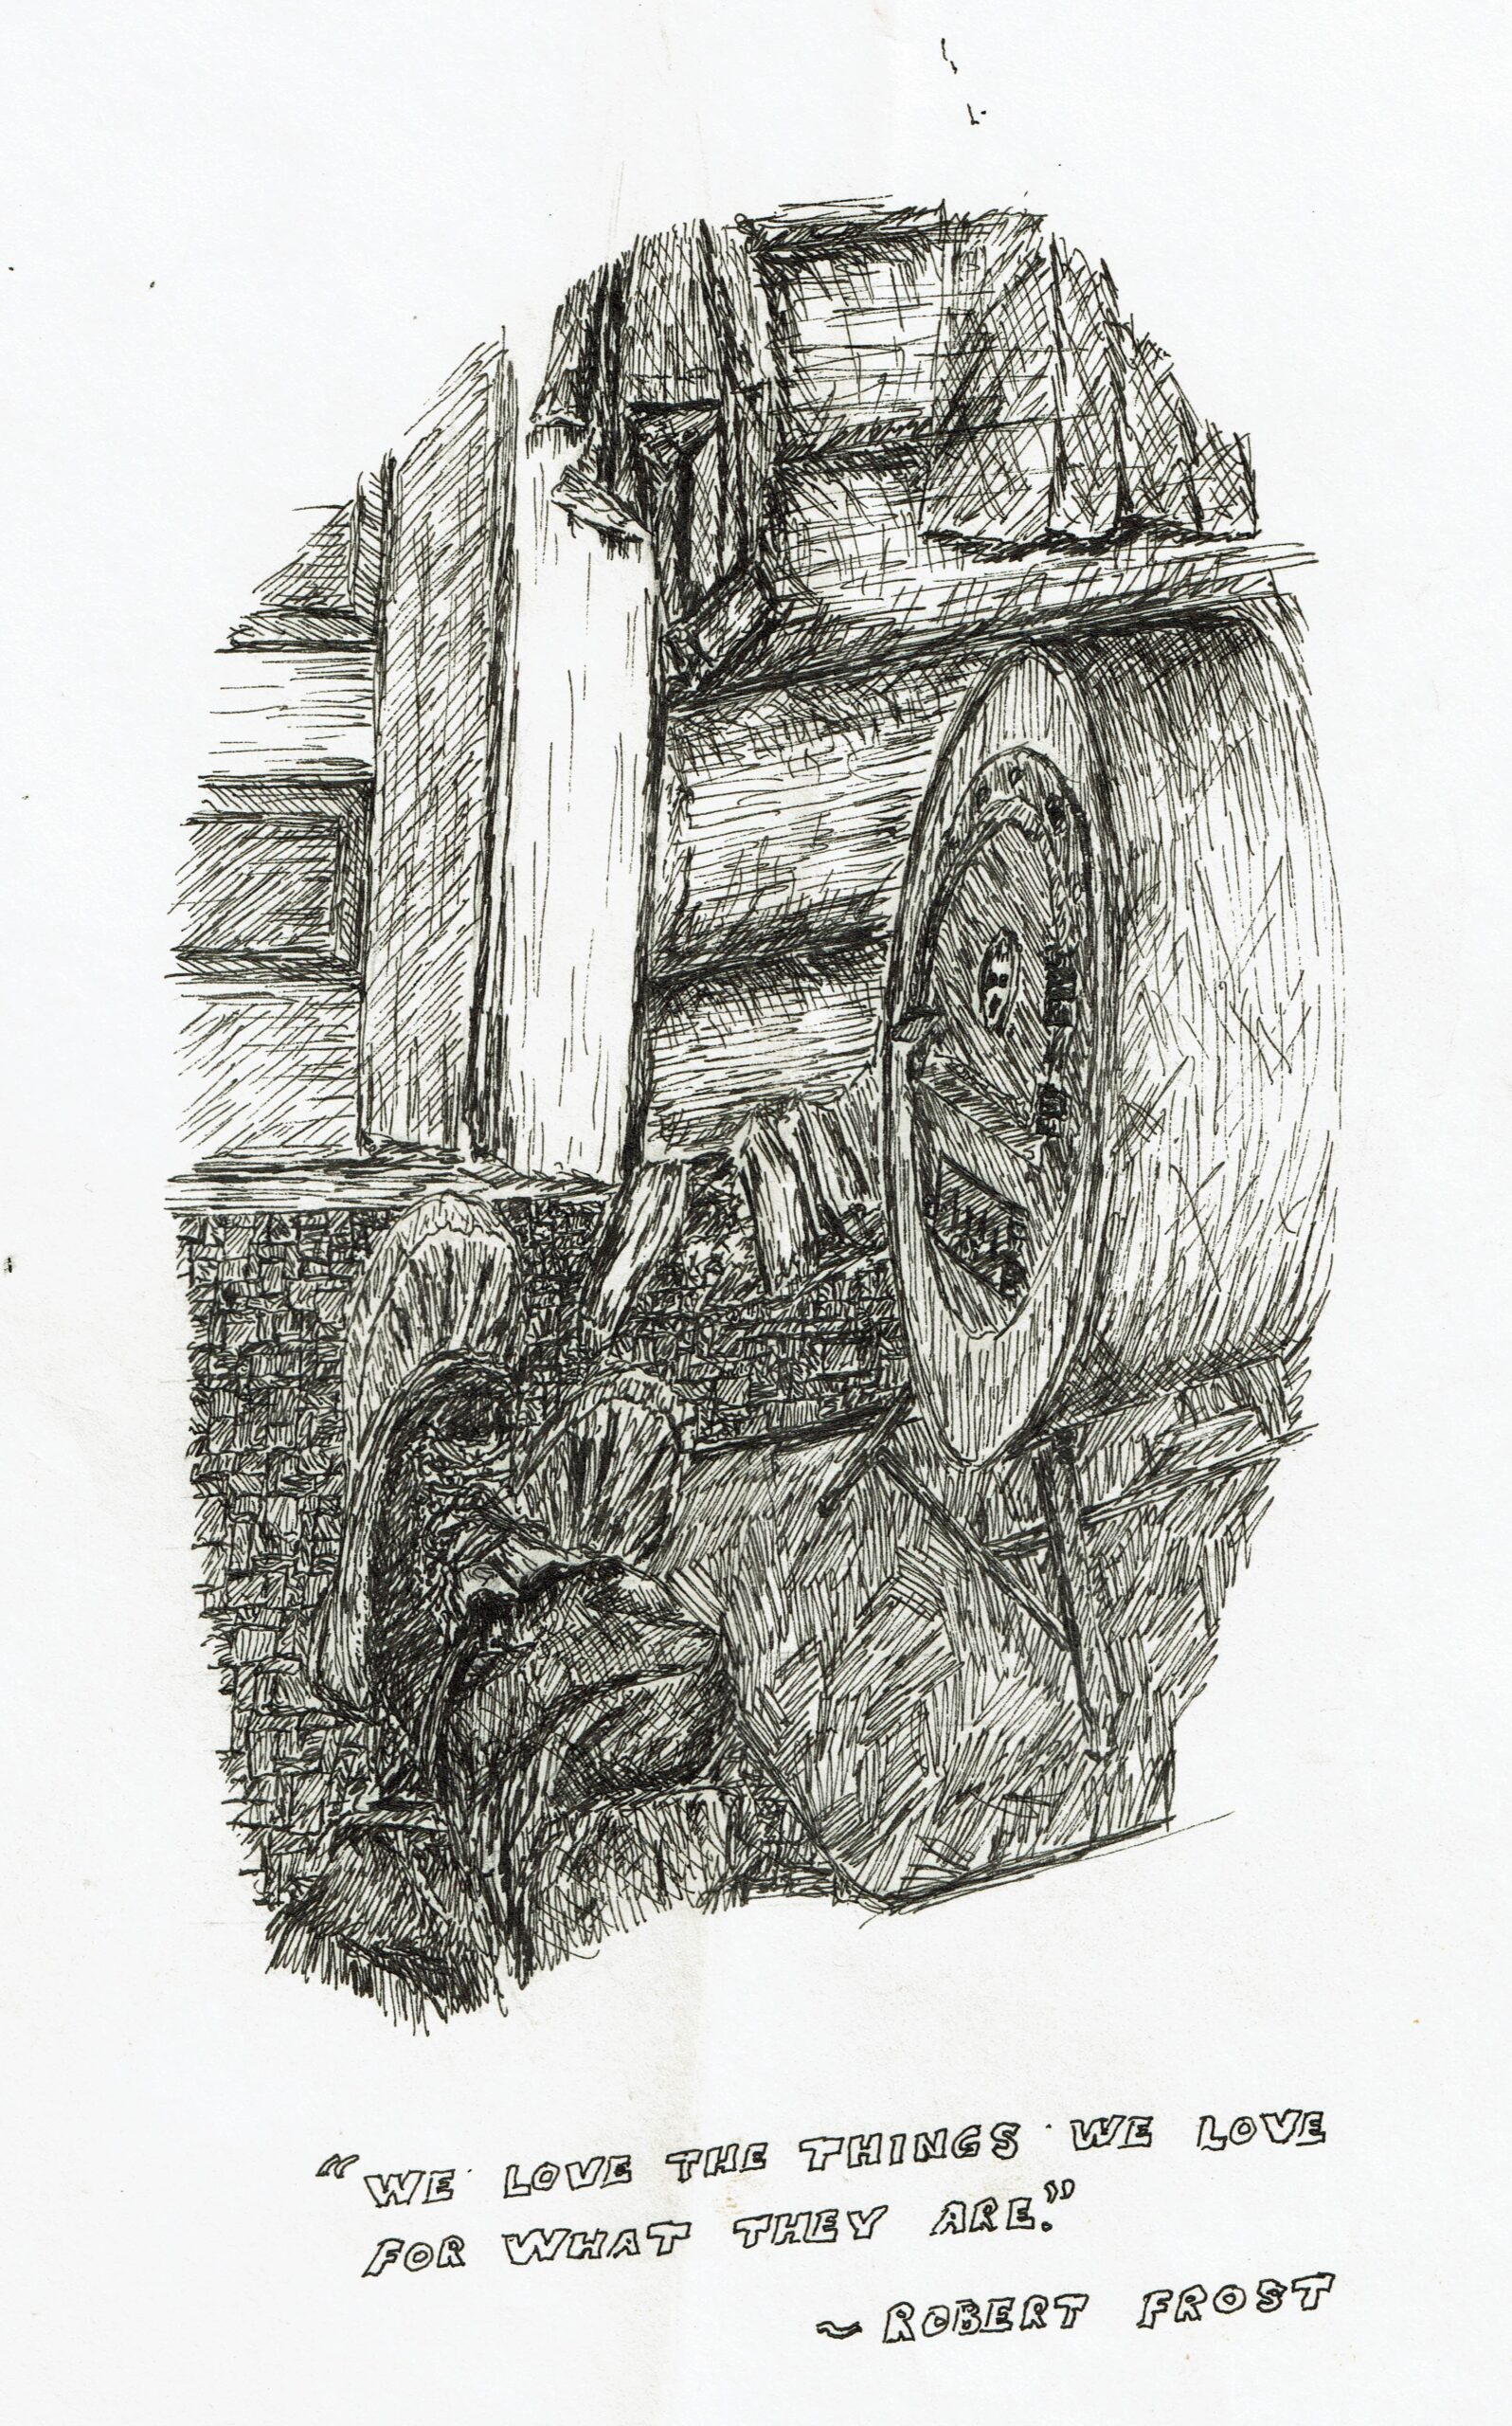 Buyck log cabin, ink drawing, barrelstove